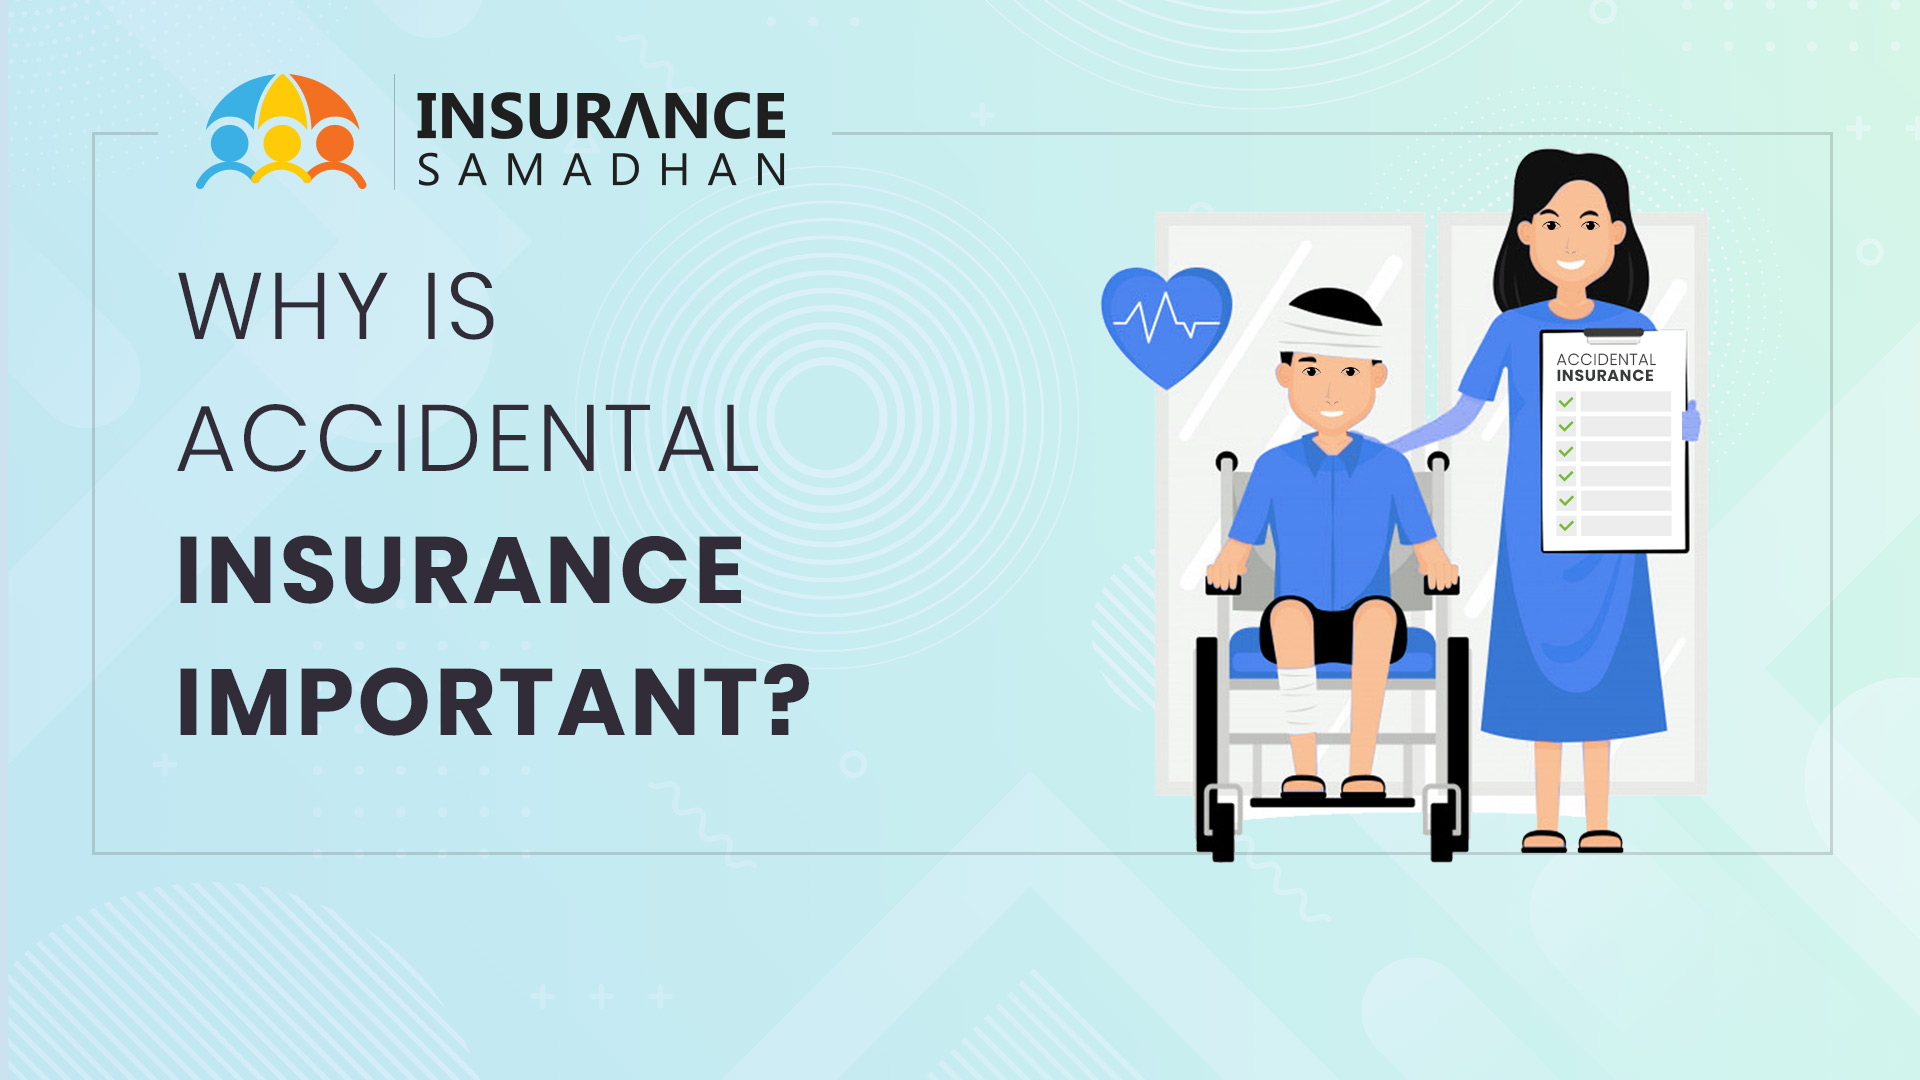 Why Accidental Insurance is Important?